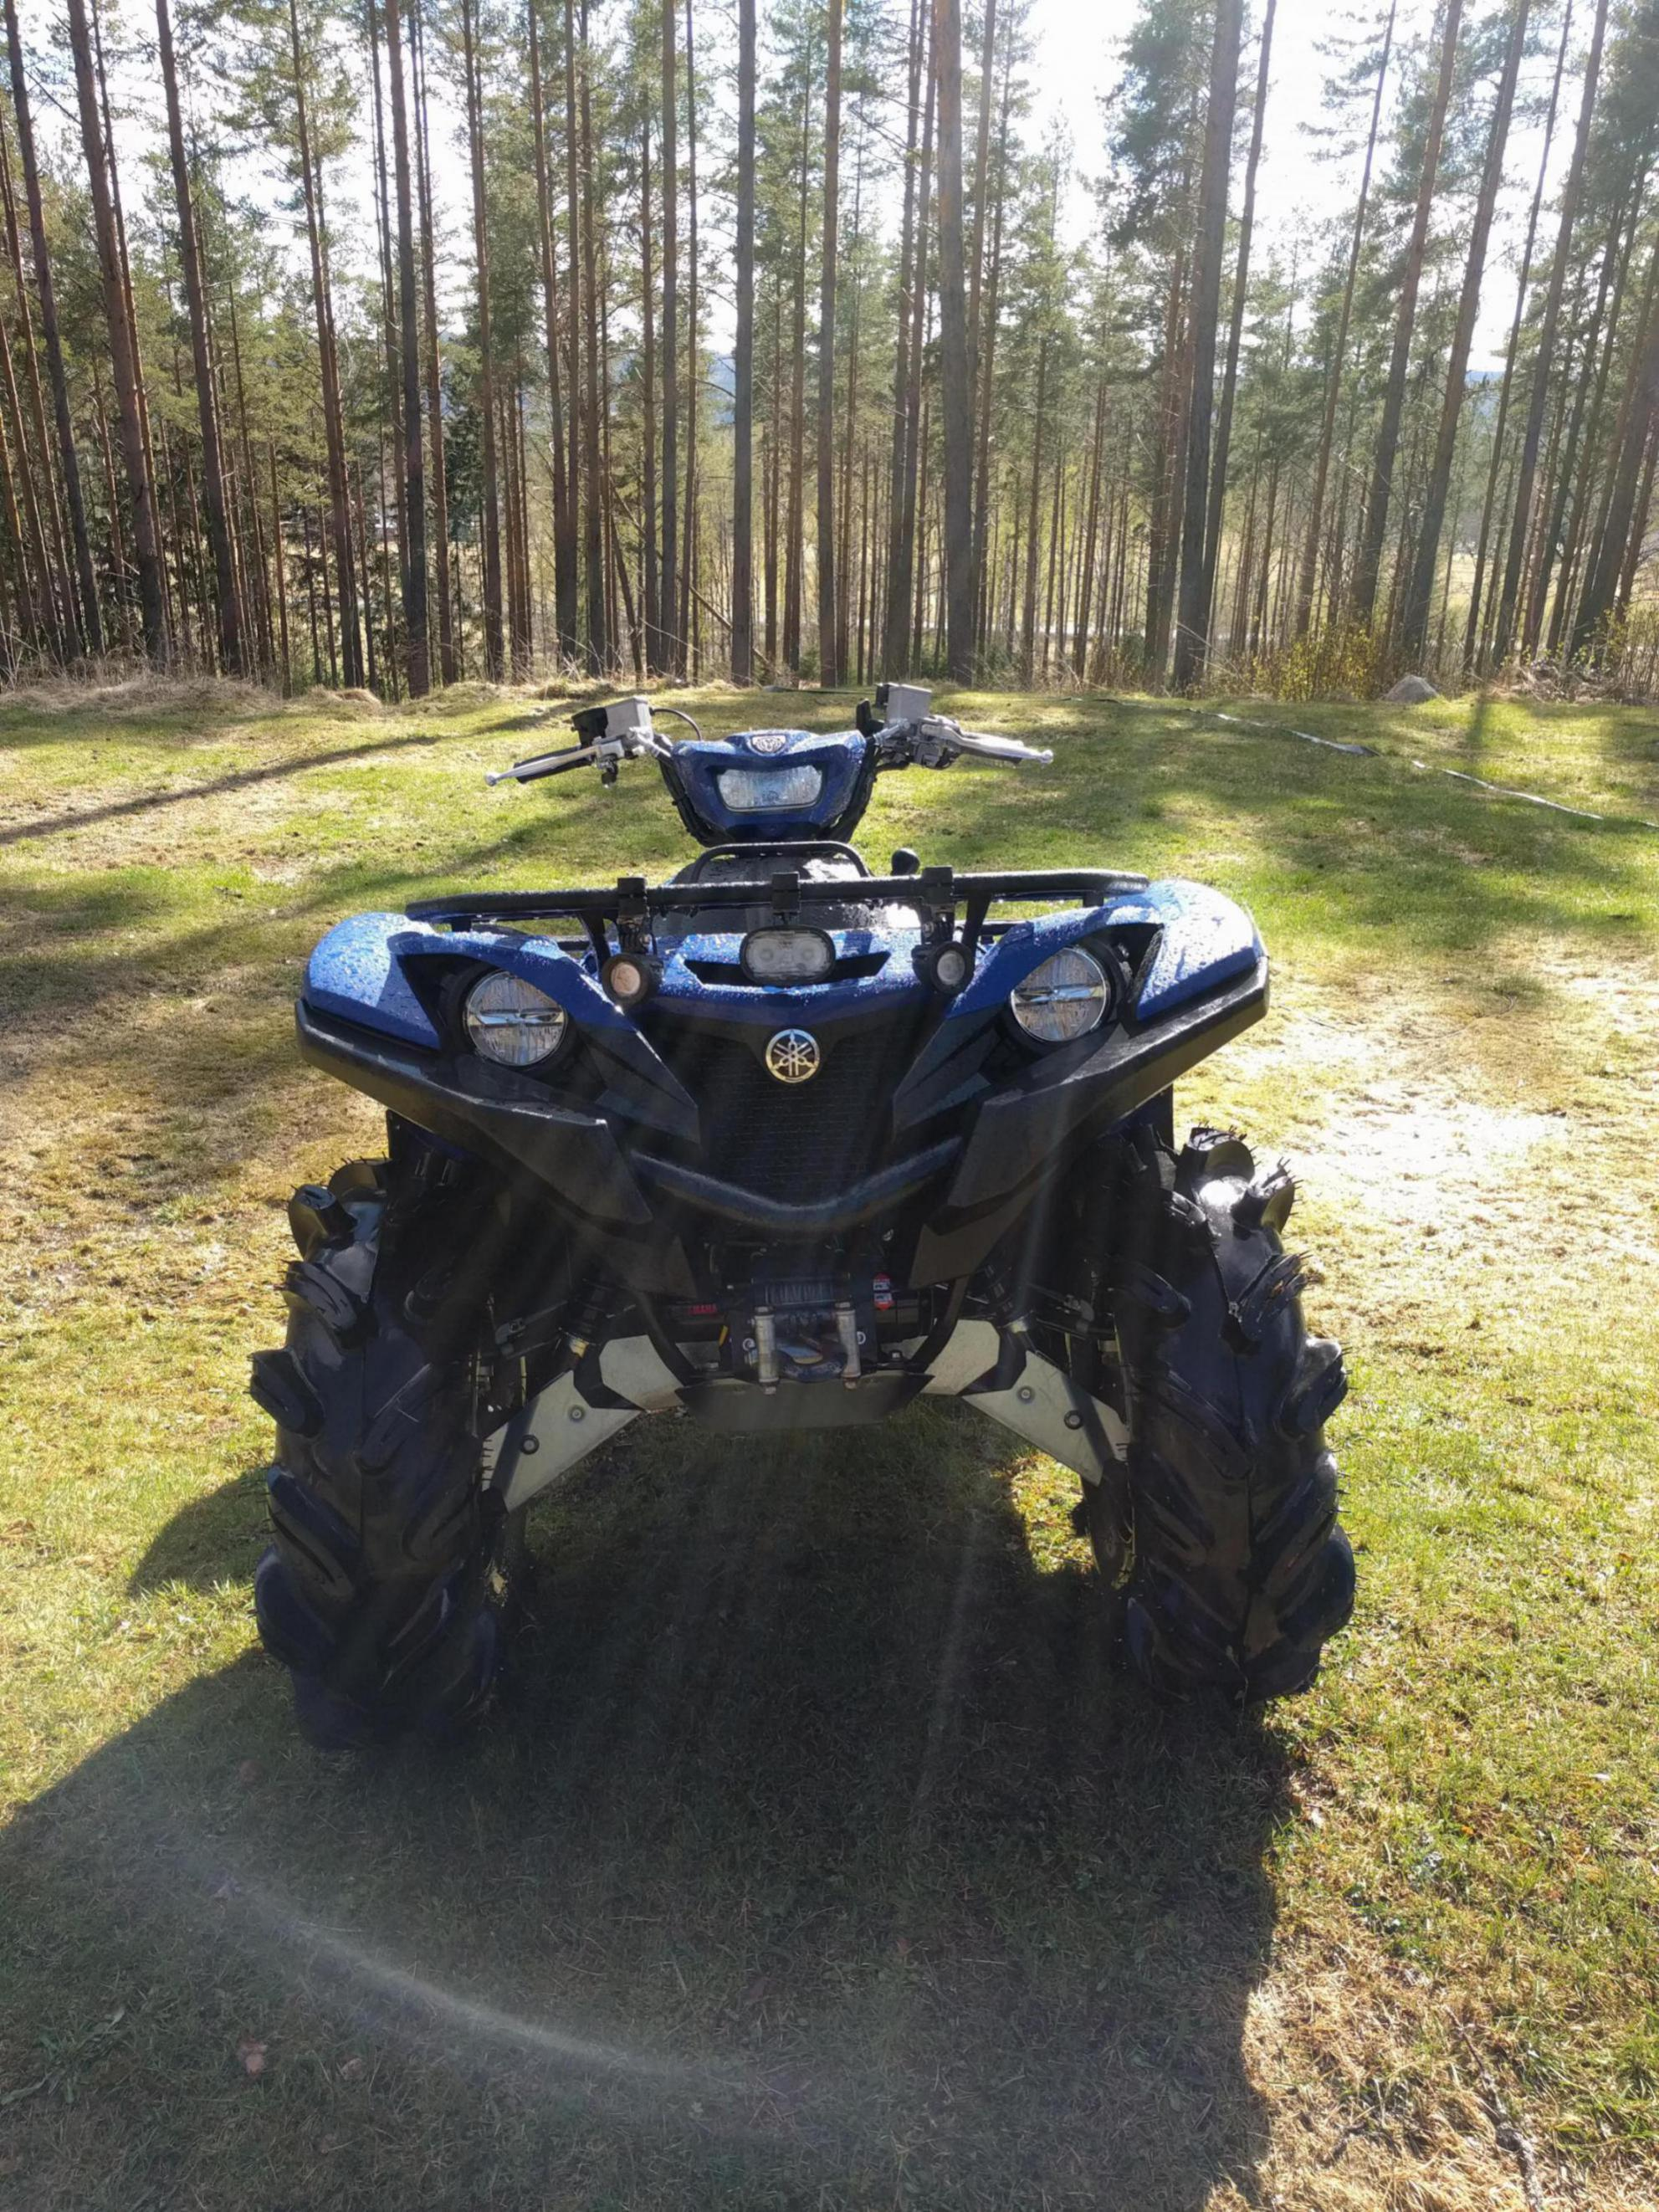 Yamaha Grizzly 660 >> 29,5 outlaws on 2016 grizzly ? - Yamaha Grizzly ATV Forum